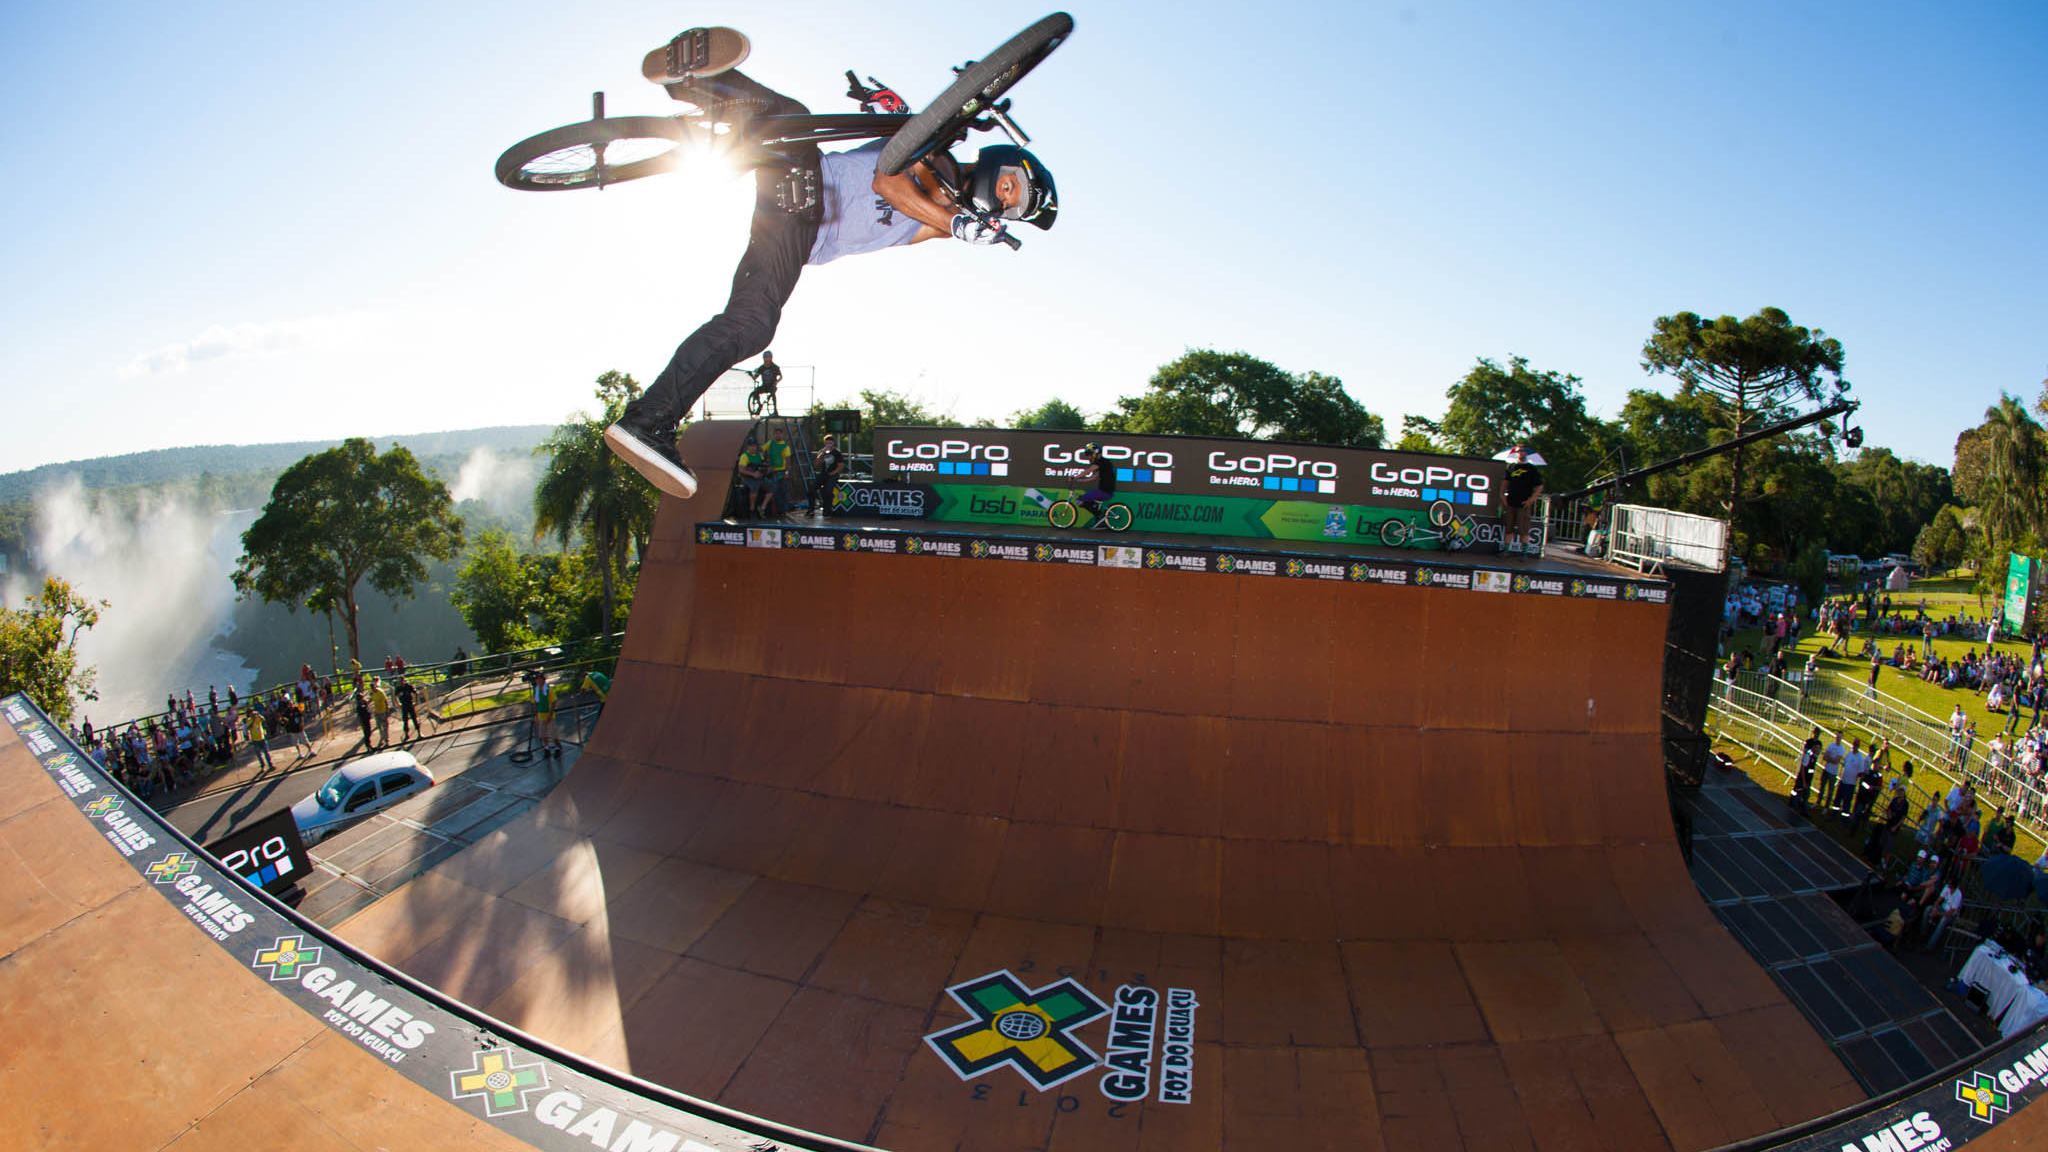 Mykel Larrin at X Games Foz in April. Larrin placed fifth in the finals.